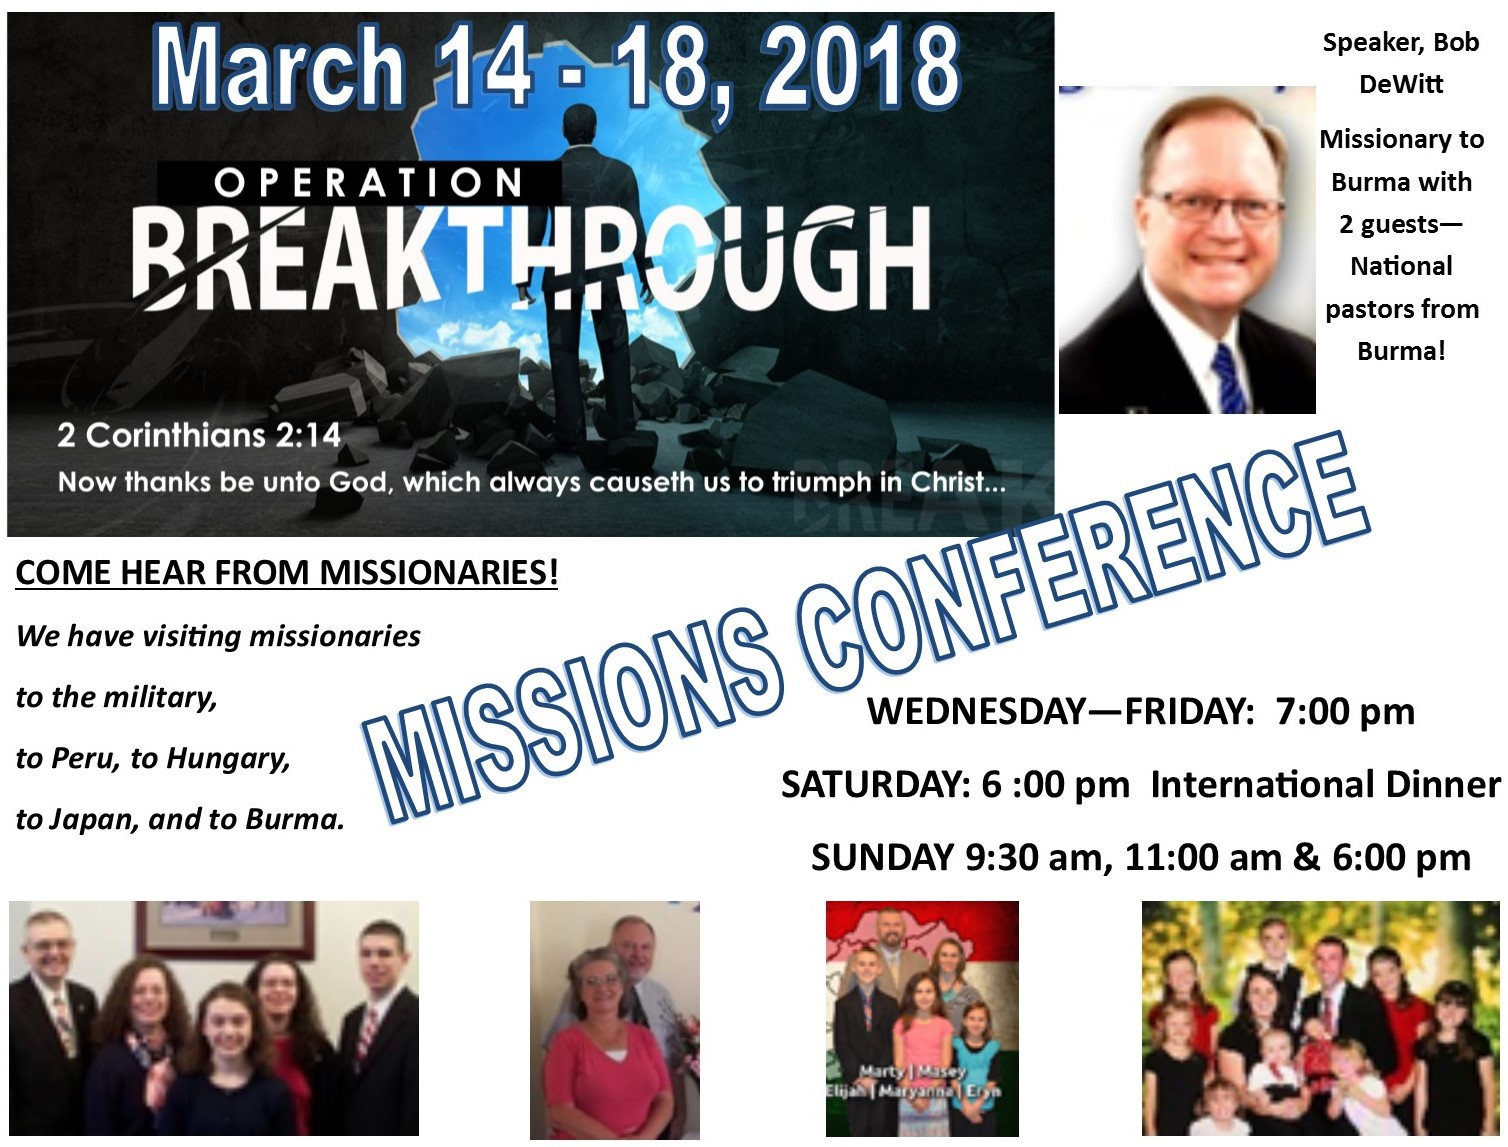 FPM-MISSIONS-CONFERENCE-FLYER-for-the-website